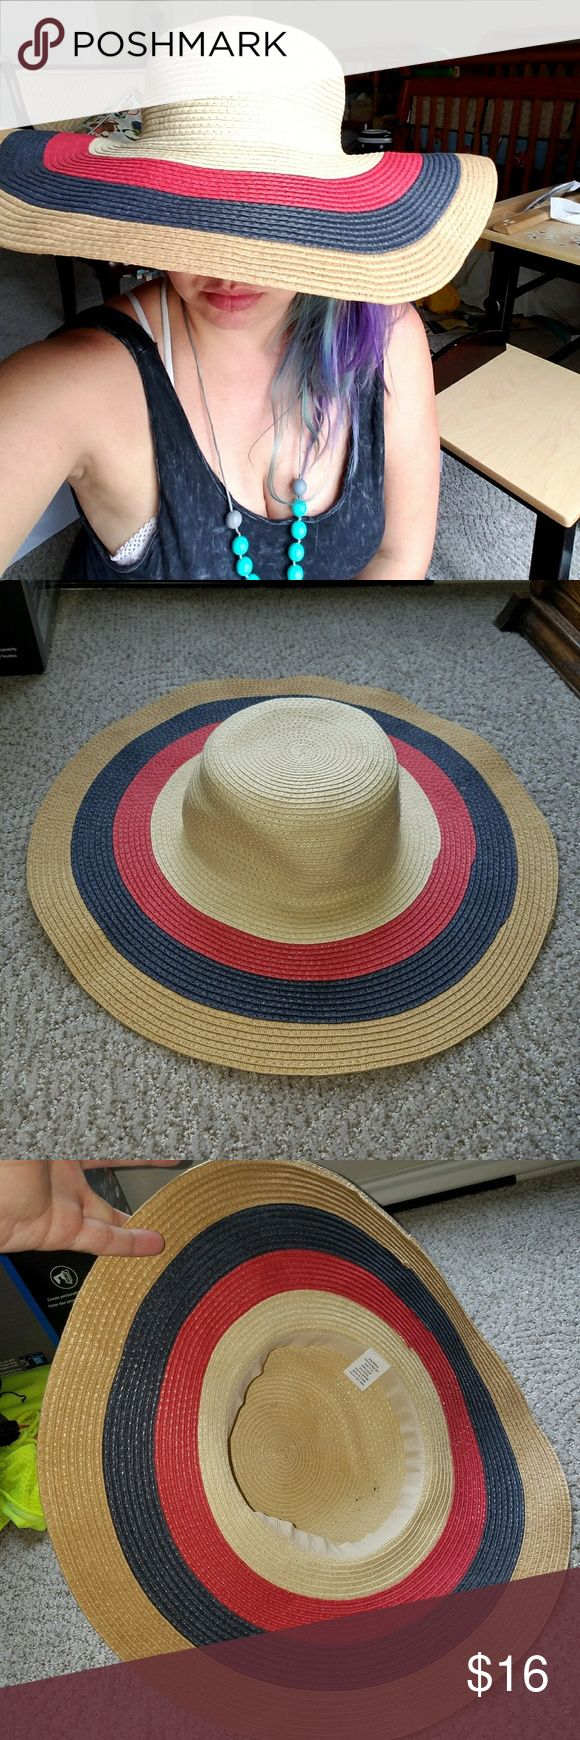 Giant floppy sun hat straw EC So Glamorous!! Perfect for this summer and in like new condition, very soft and flexible, extremely comfortable. Breathes well. Bought and worn twice last season. Colors are tan, red, and navy. Accessories Hats